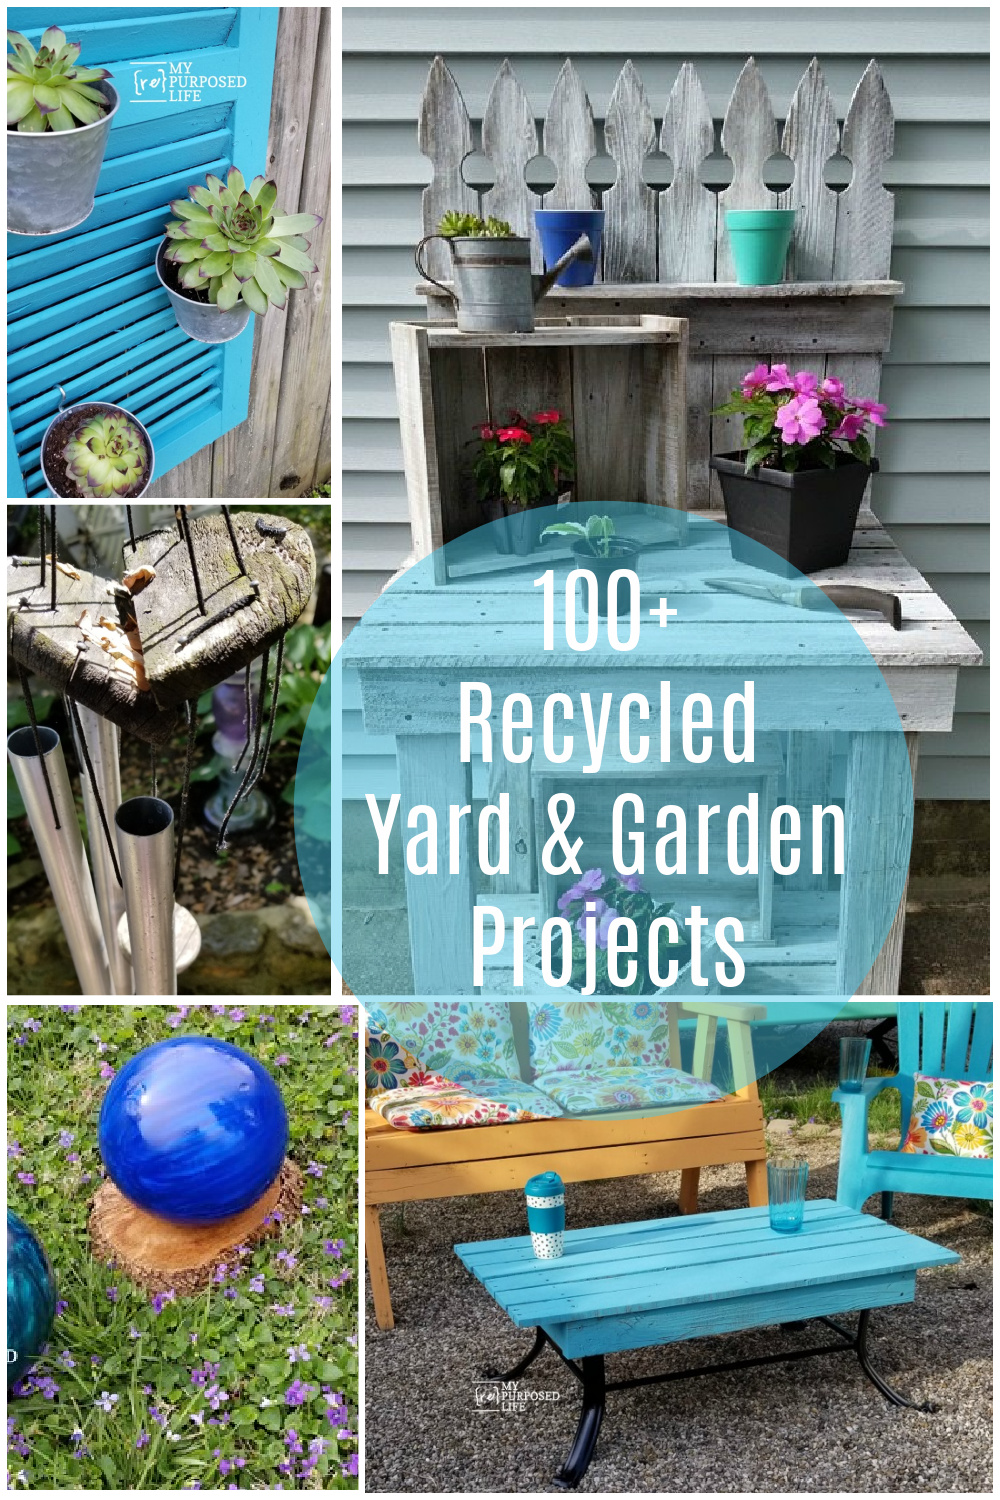 You will be inspired to upcycle junk when you see this collection of recycled yard and garden projects from My Repurposed Life and friends. #MyRepurposedLife #repurposed #yard #garden #projects via @repurposedlife